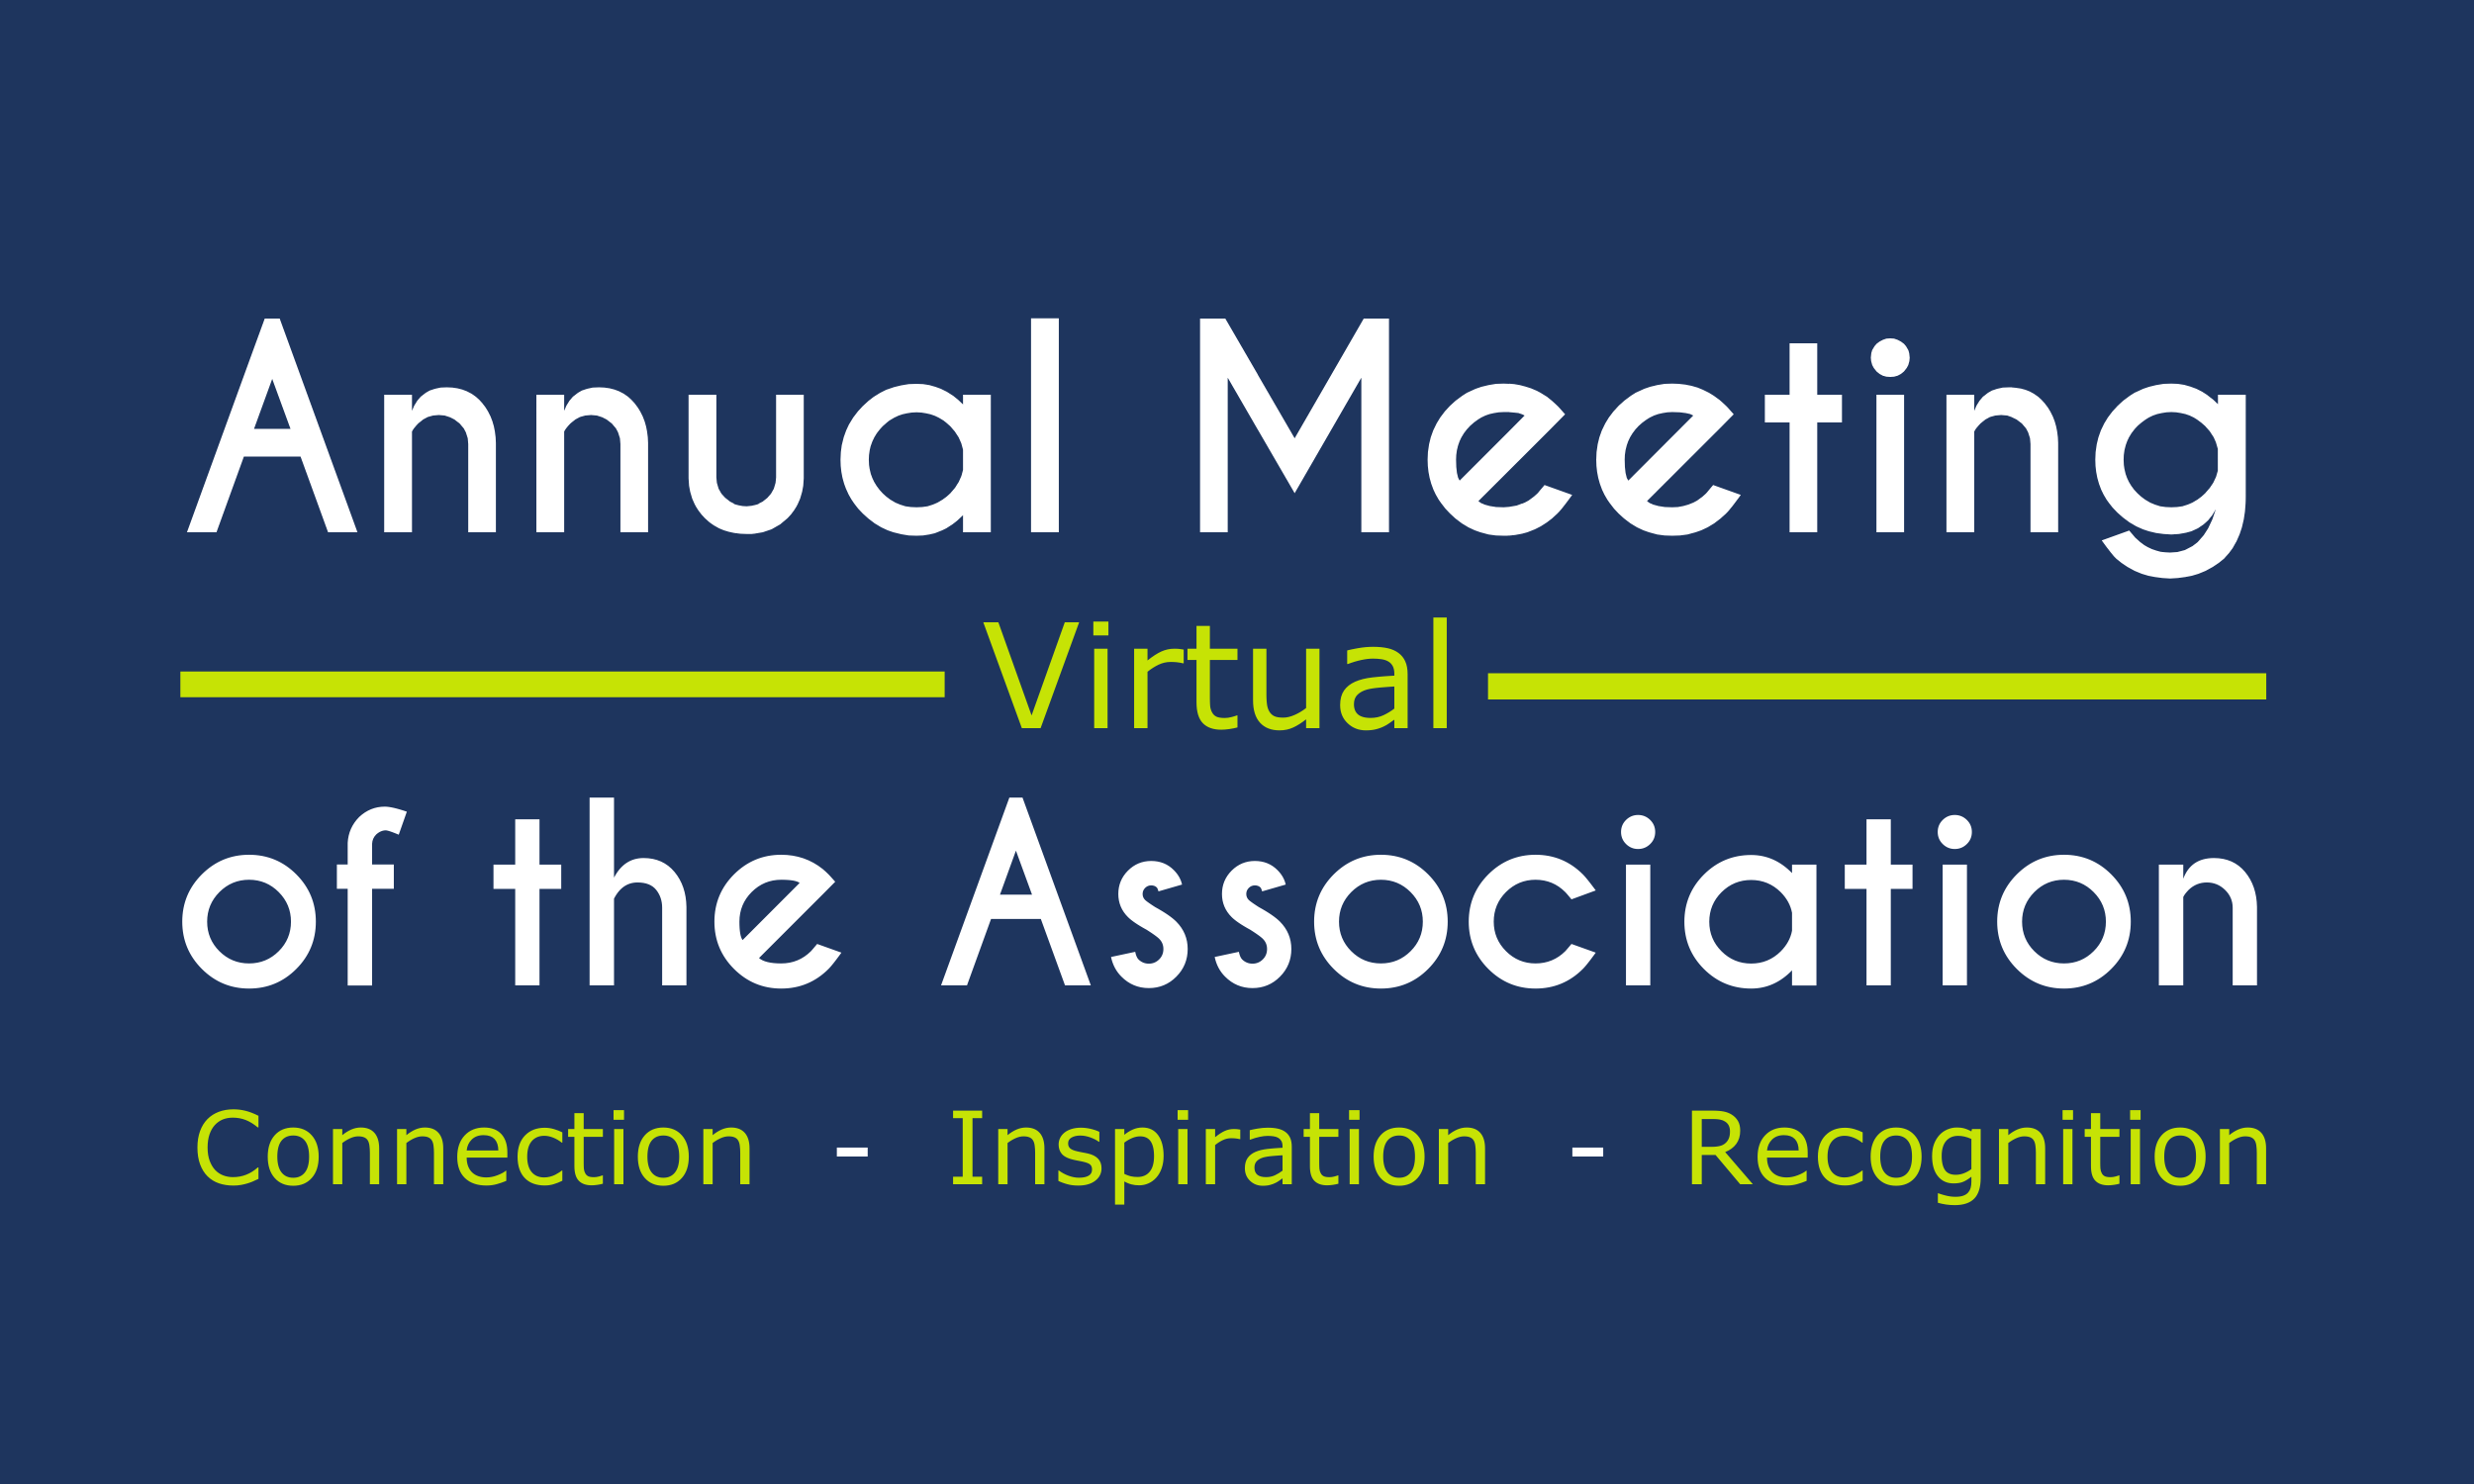 Virtual annual meeting of the association.